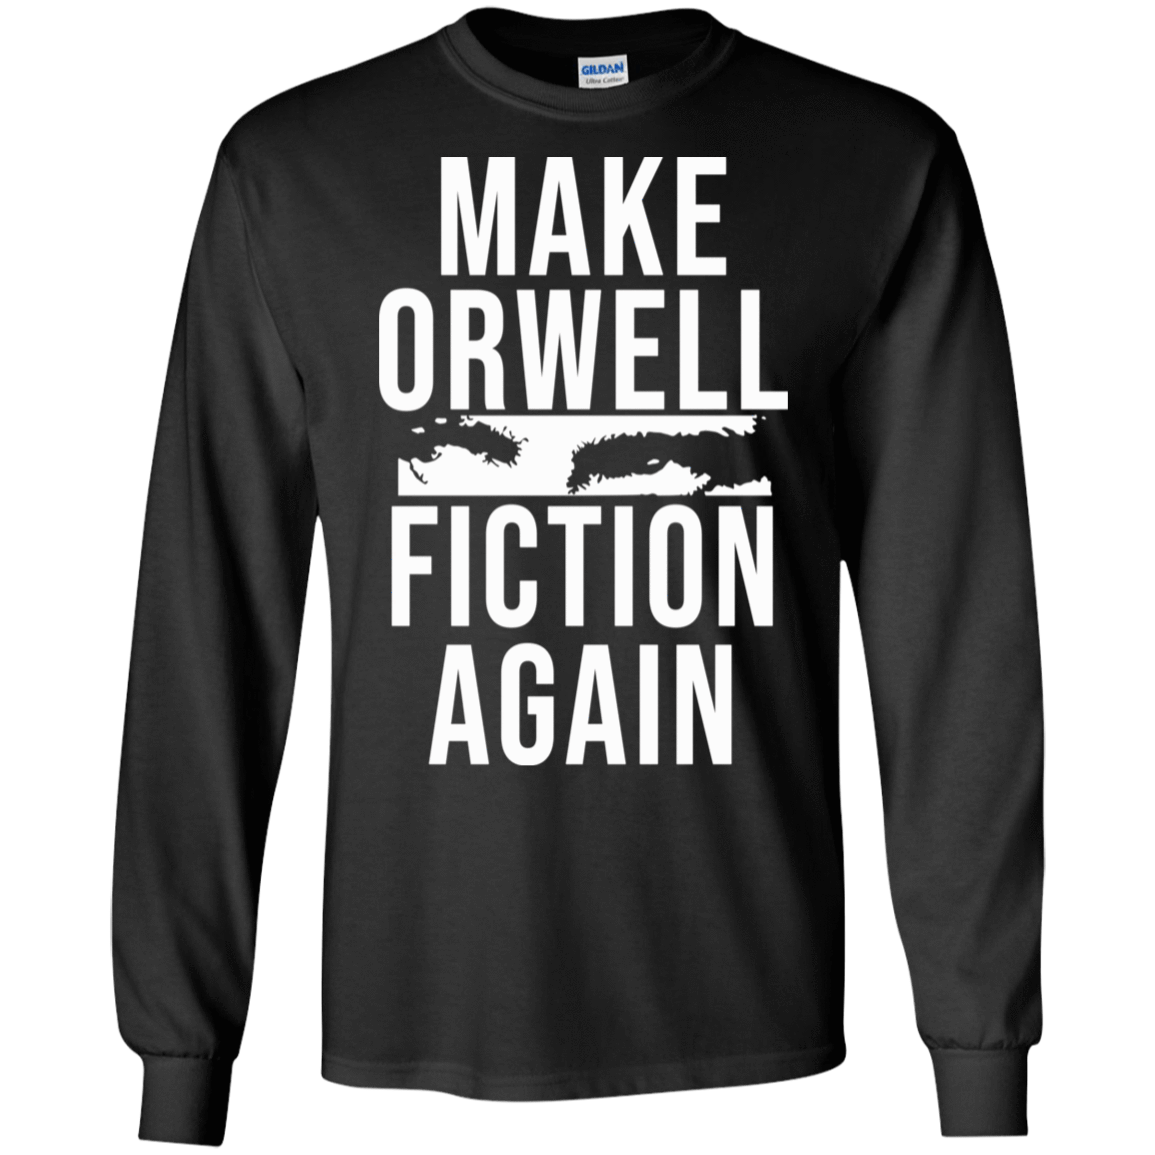 Make Orwell Fiction Again 30-186-74209467-333 - Tee Ript